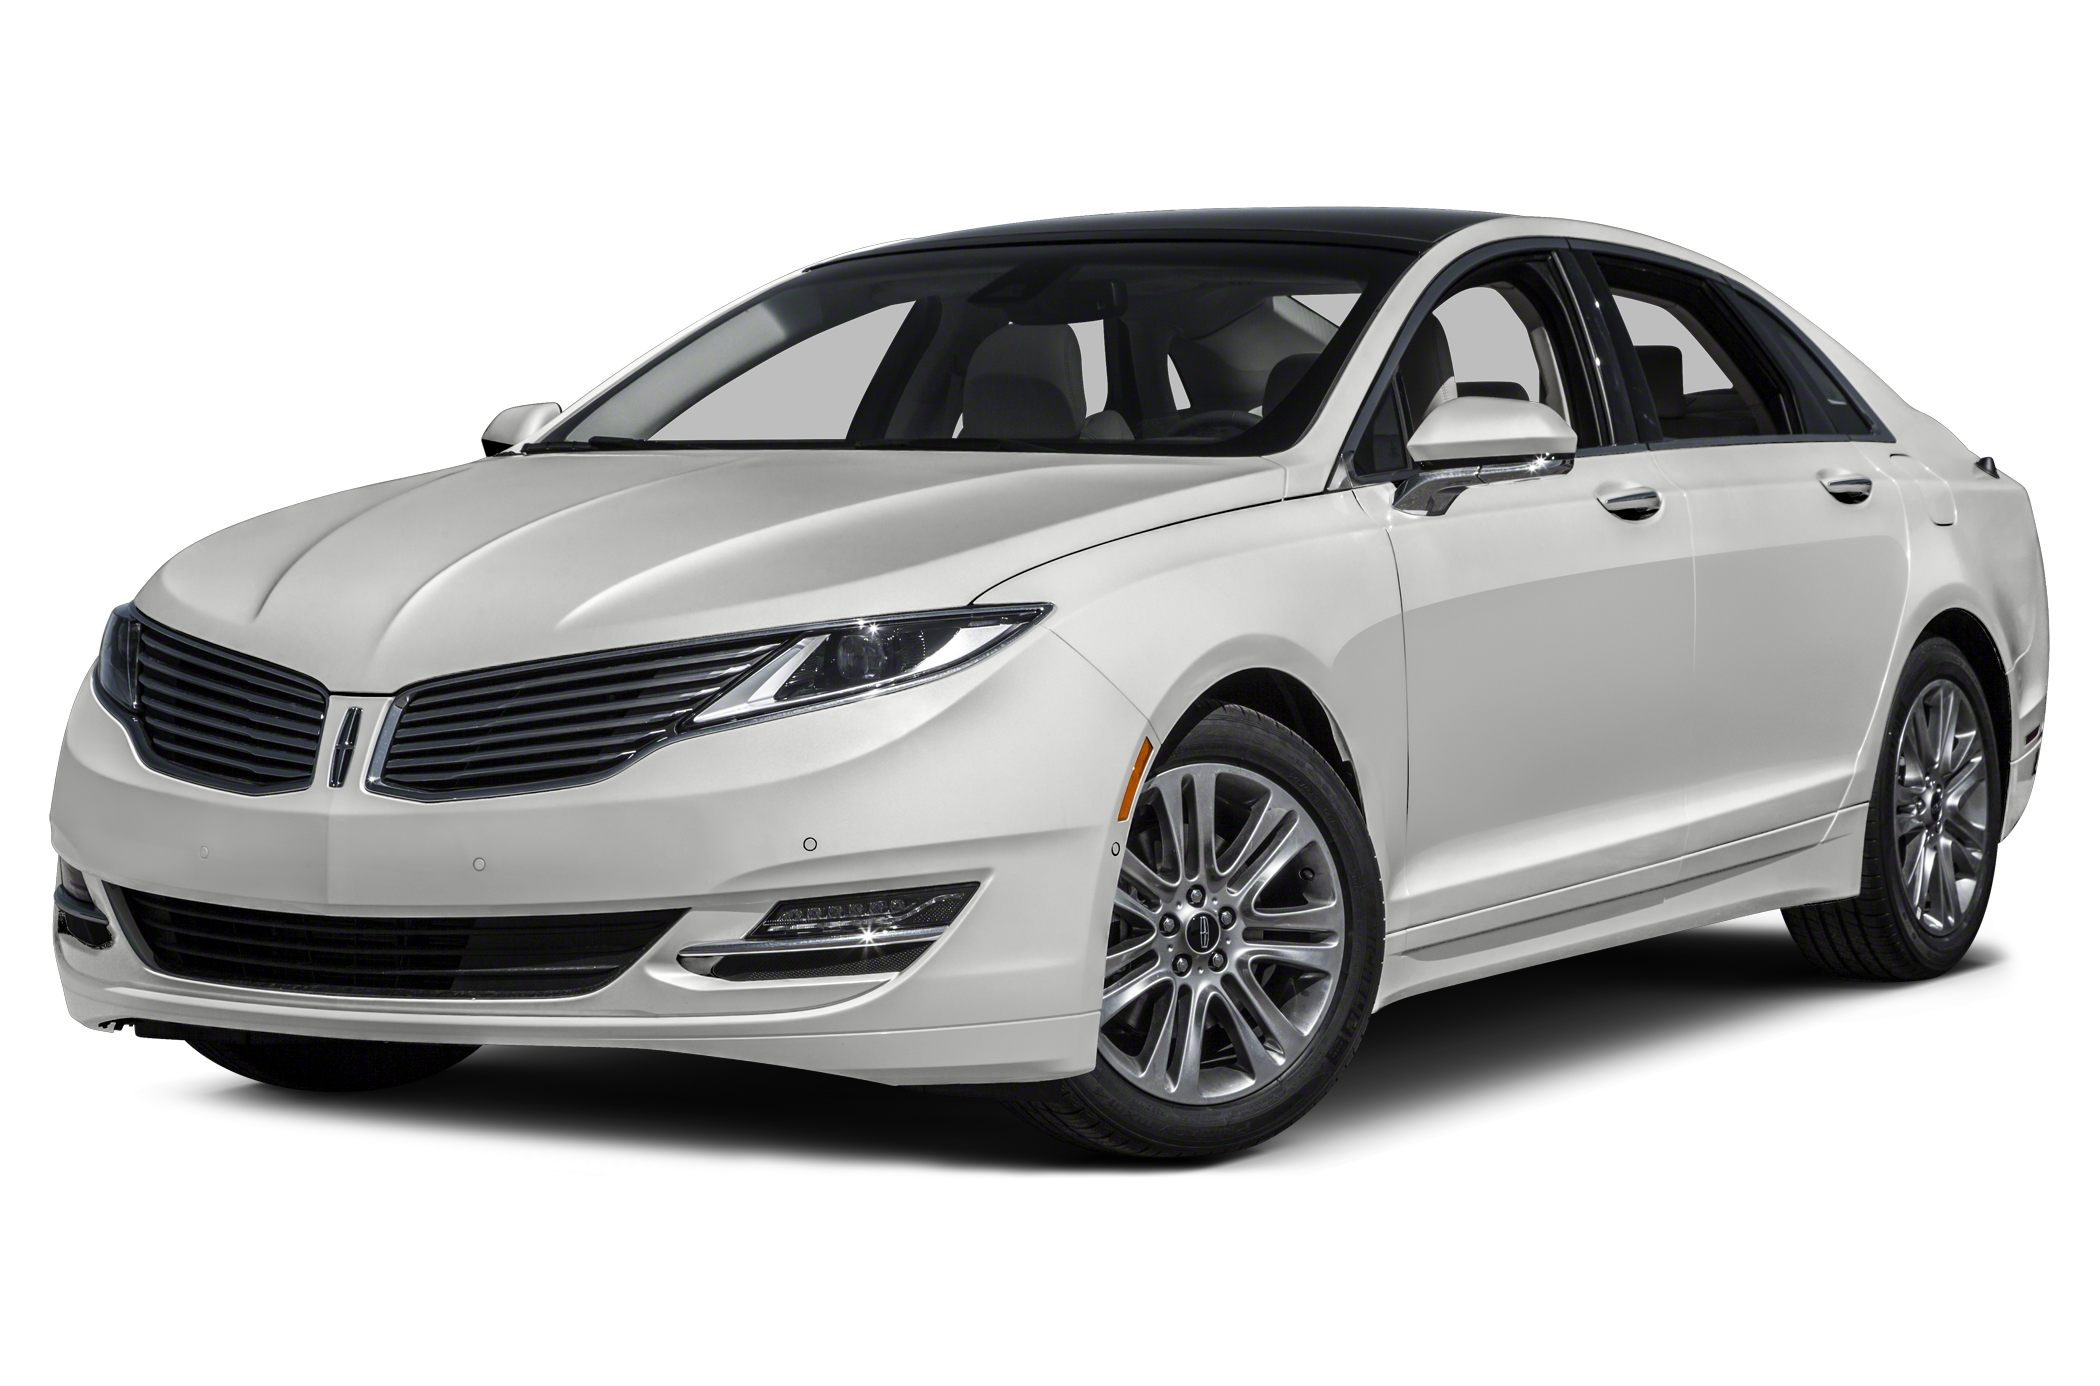 2015 Lincoln MKZ Specs Safety Rating & MPG CarsDirect